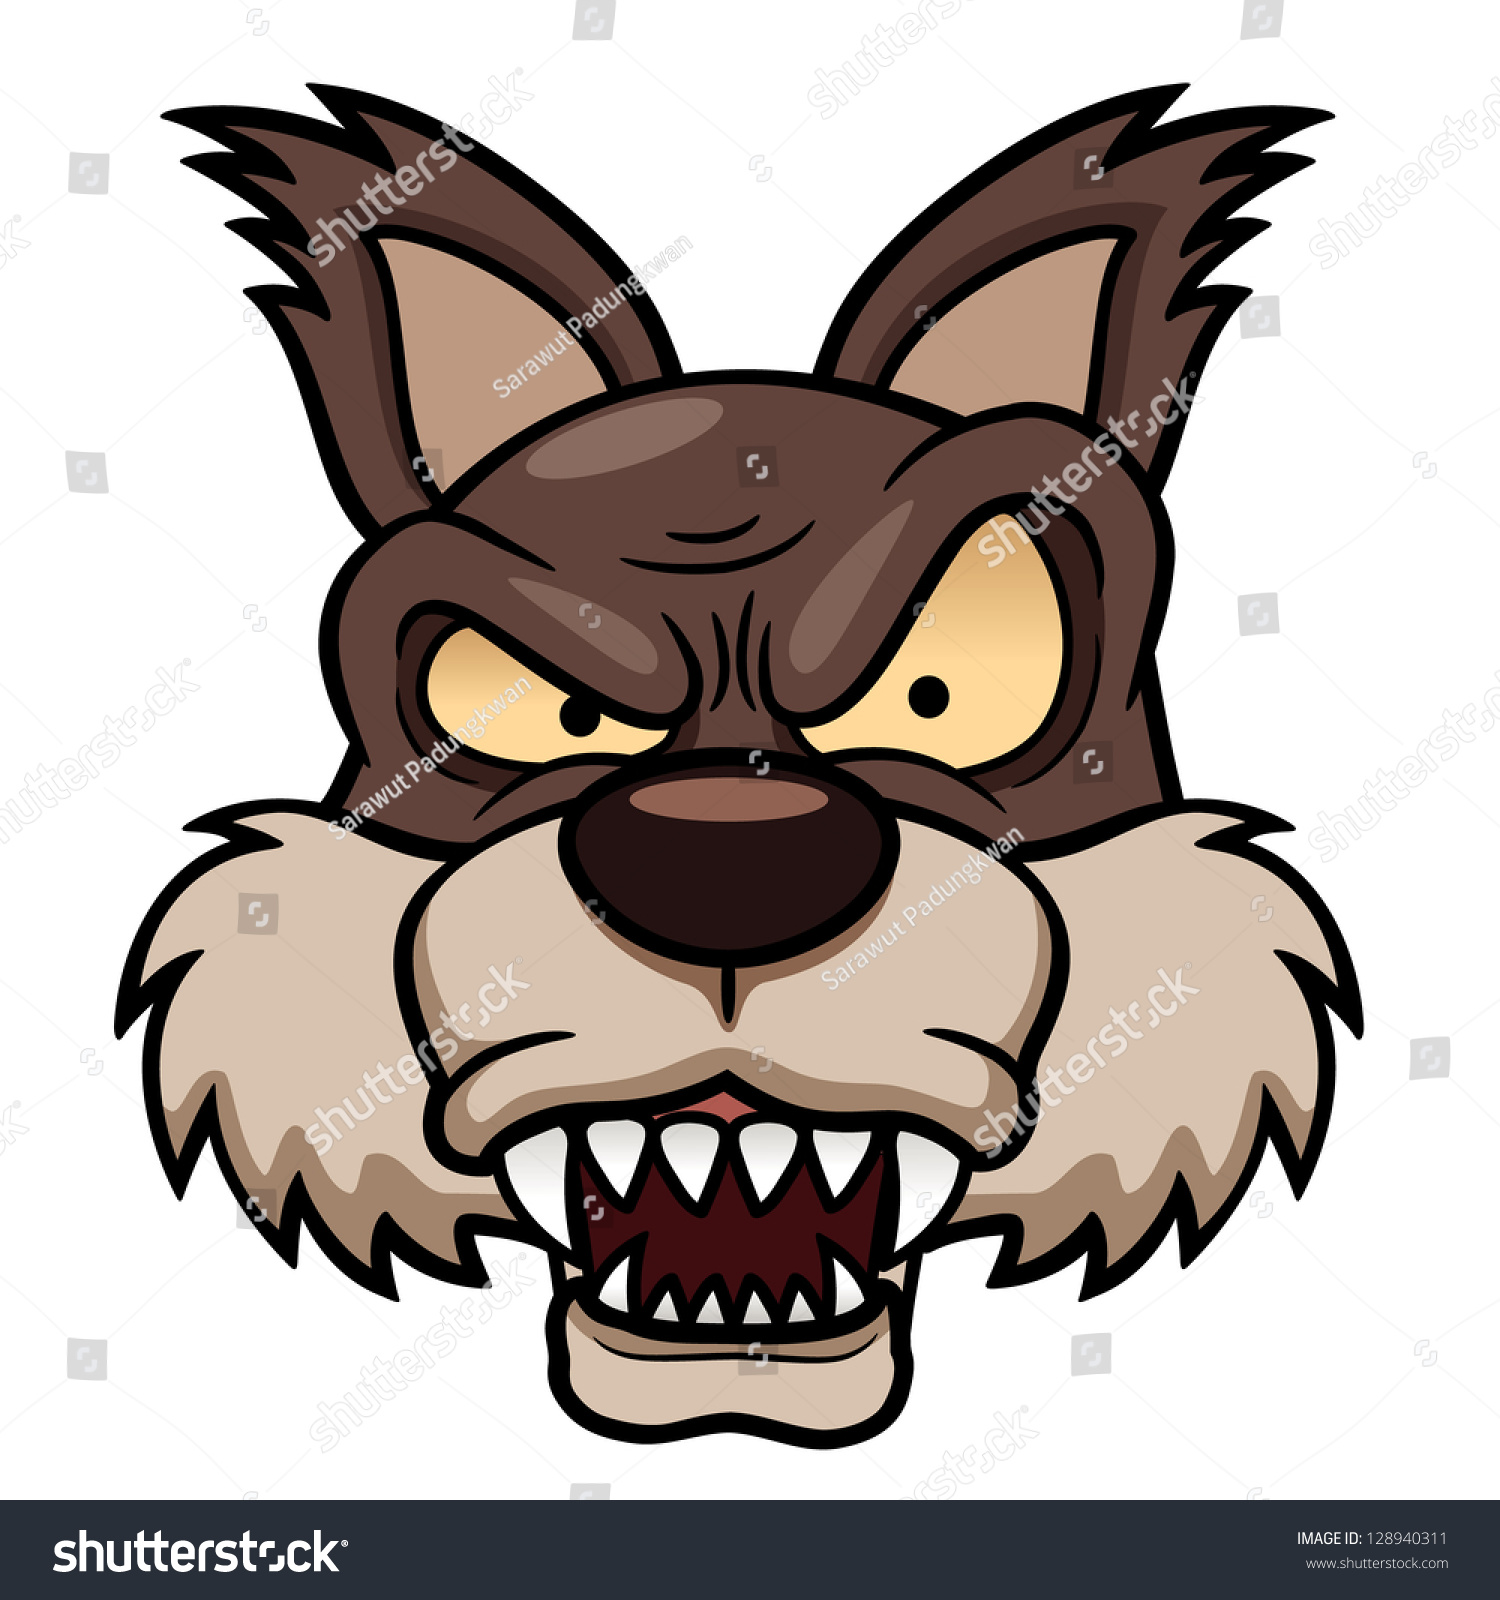 Hd Wallpapers Wolf Mask Template Printable 2love90